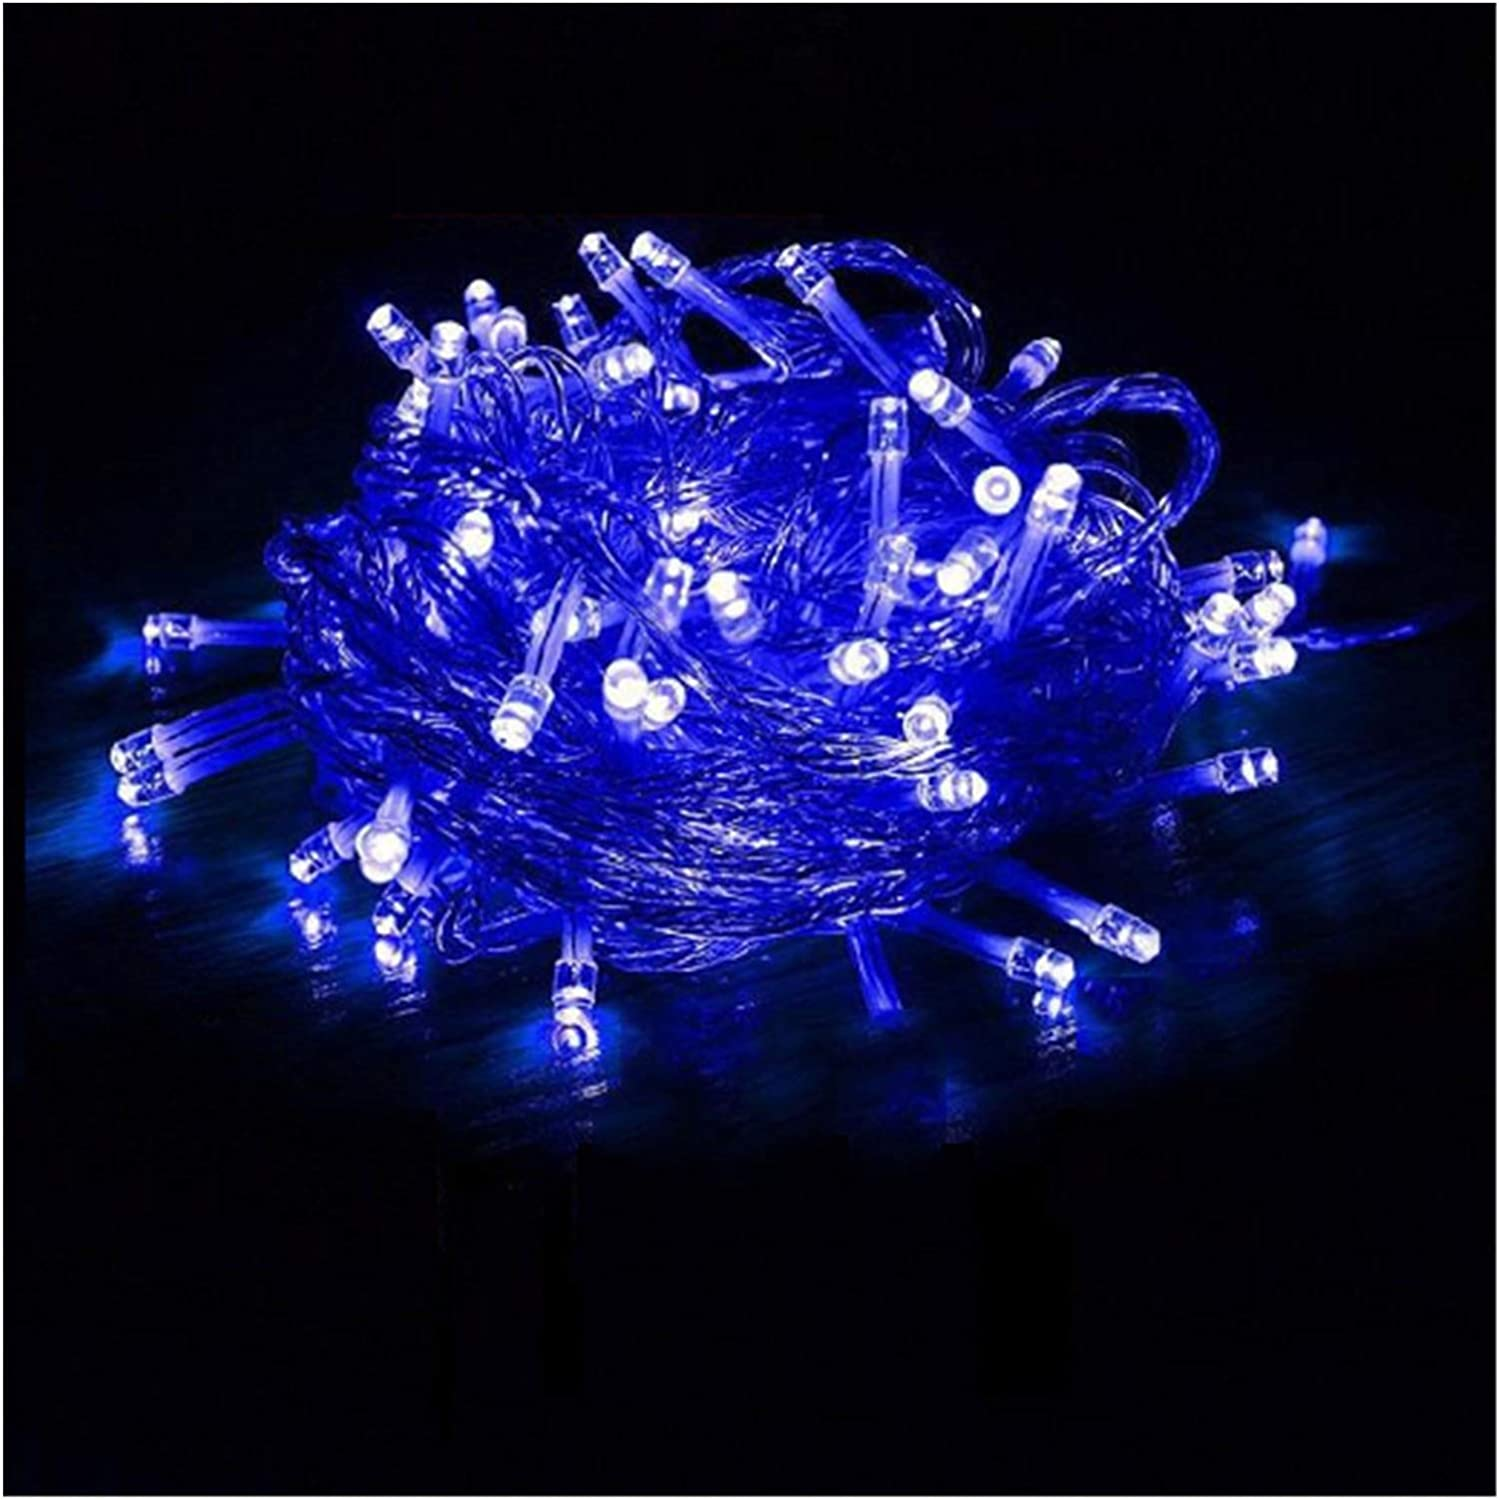 LIUPENGWEI Latest item LED Fairy String Lights Modes Max 83% OFF Wire 8 10m~600m